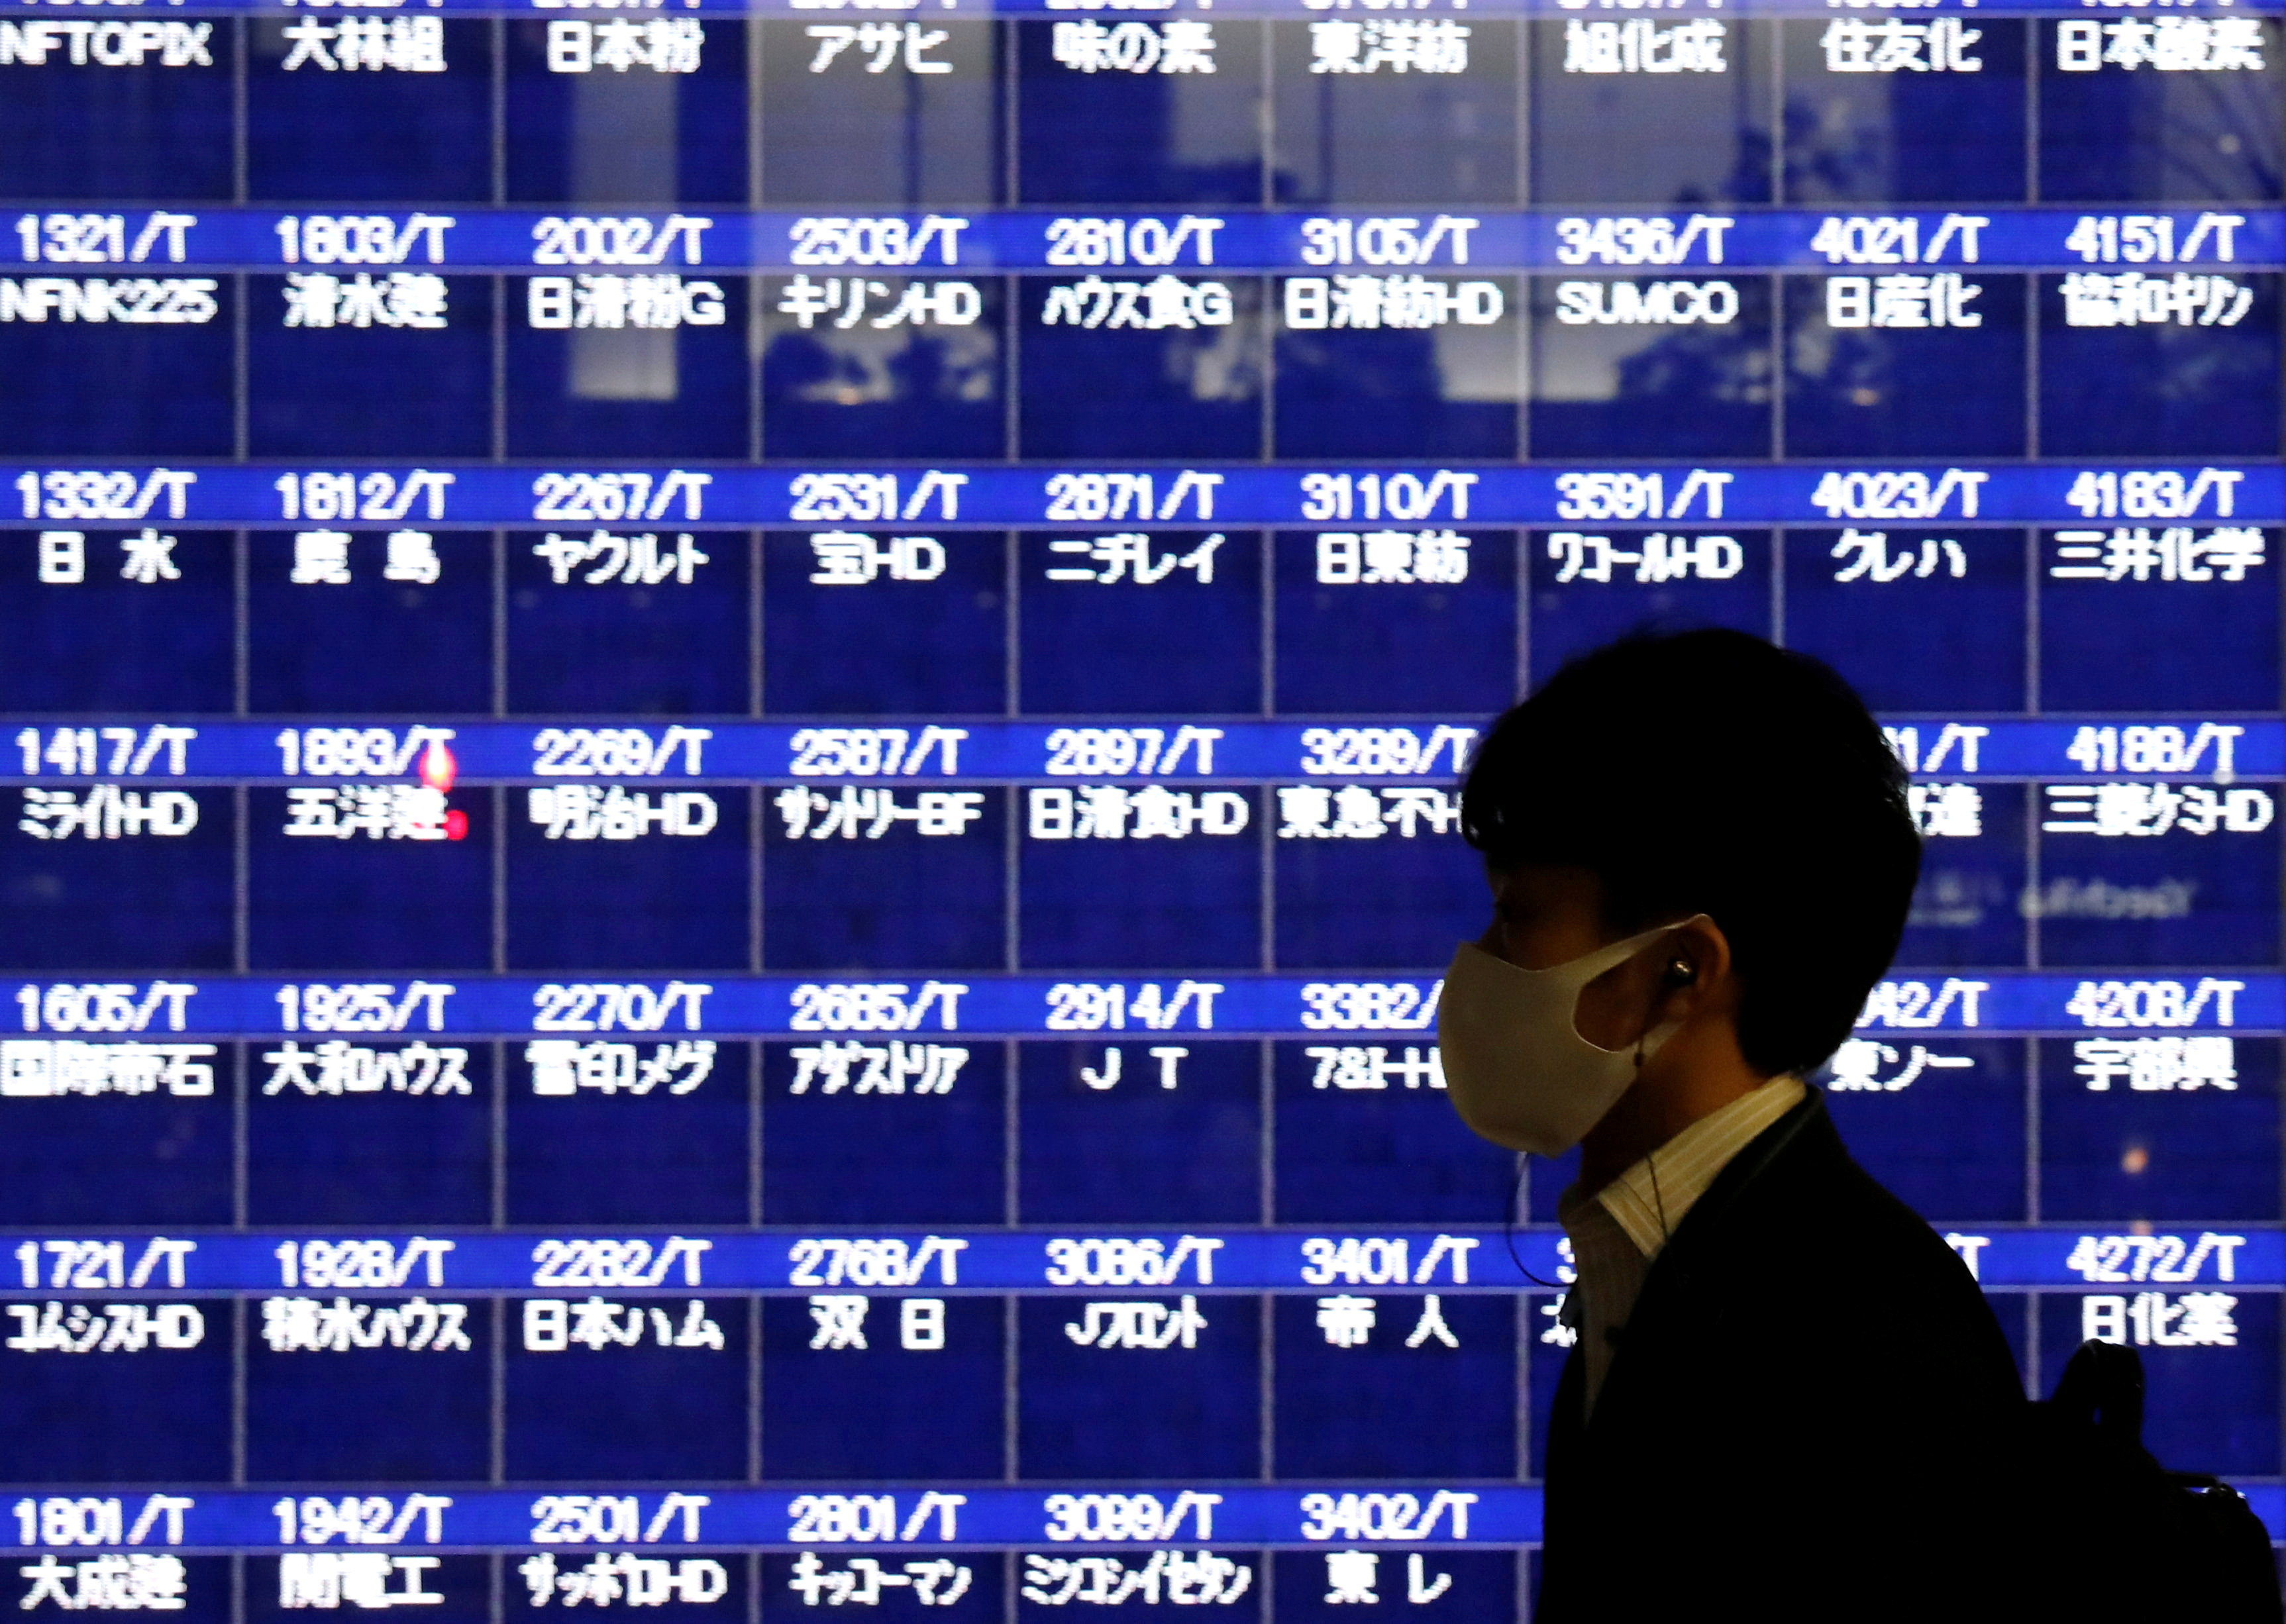 A passerby wearing a protective mask is silhouetted in front of a screen of blank prices on a stock quotation board after Tokyo Stock Exchange temporarily suspended all trading due to system problems, amid the coronavirus disease (COVID-19) pandemic, in Tokyo, Japan October 1, 2020.  REUTERS/Issei Kato/File Photo